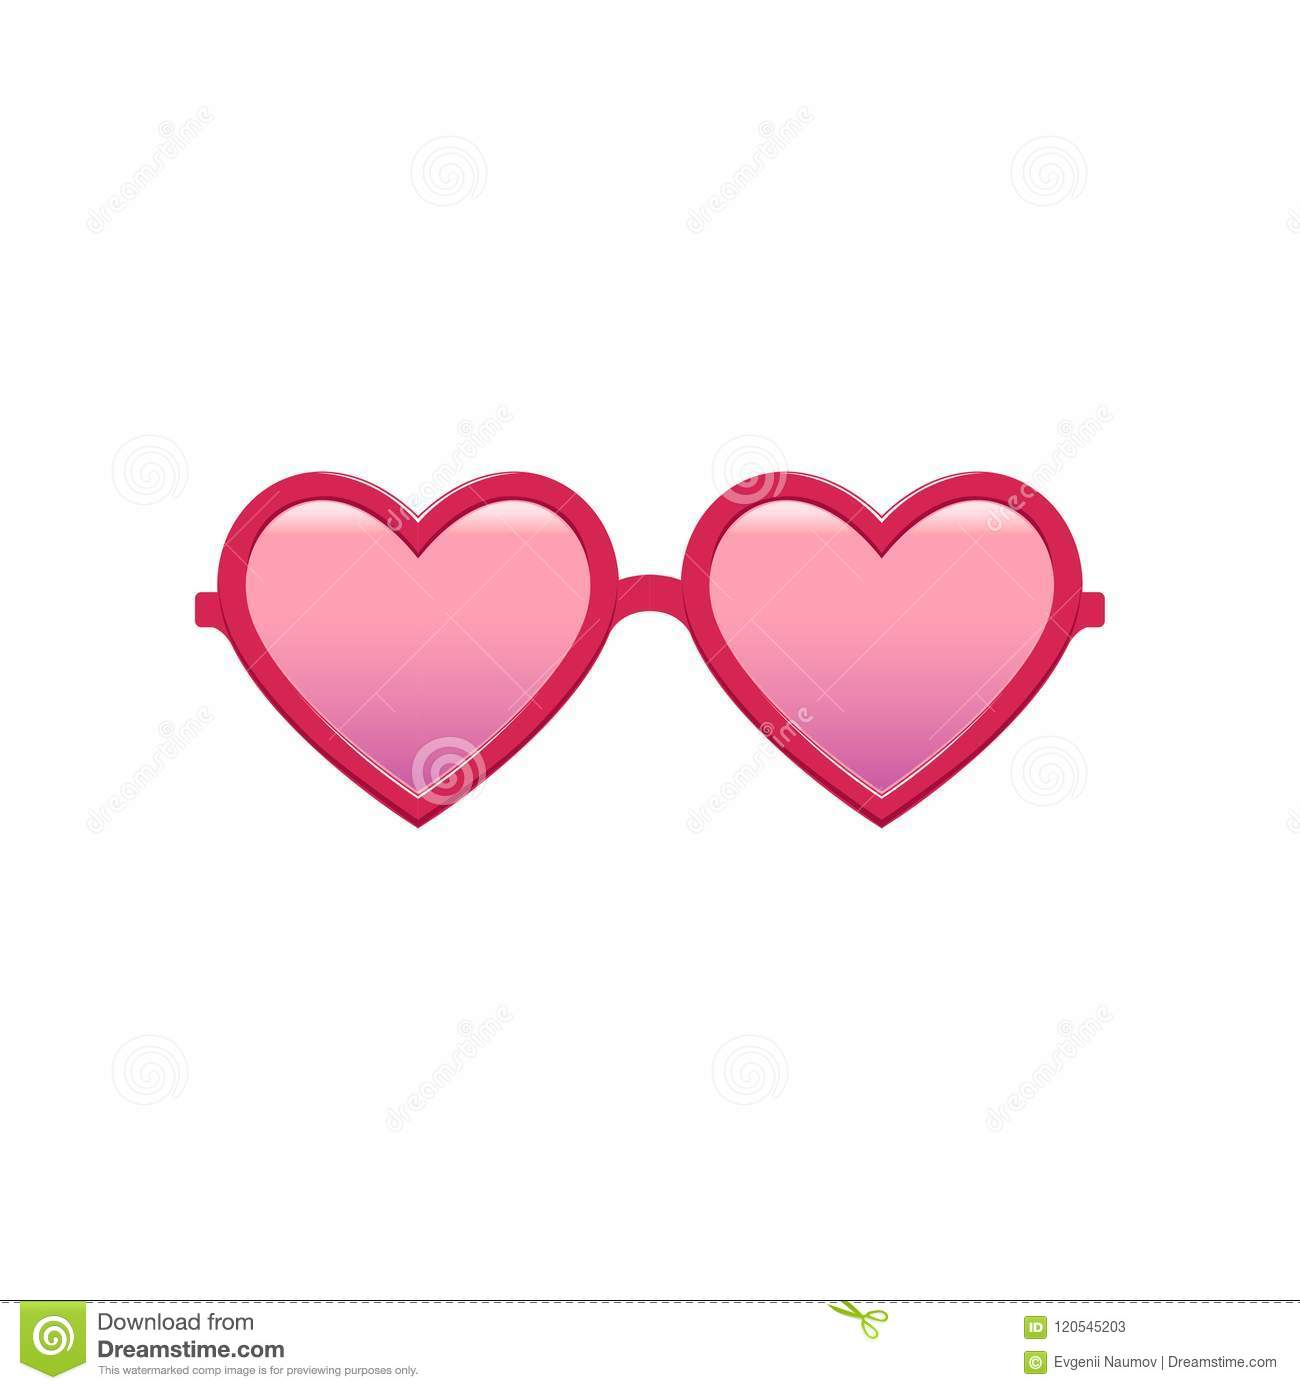 Cute heart-shaped sunglasses with pink tinted lenses and plastic frame. Fashion women`s accessory. Protective eyewear